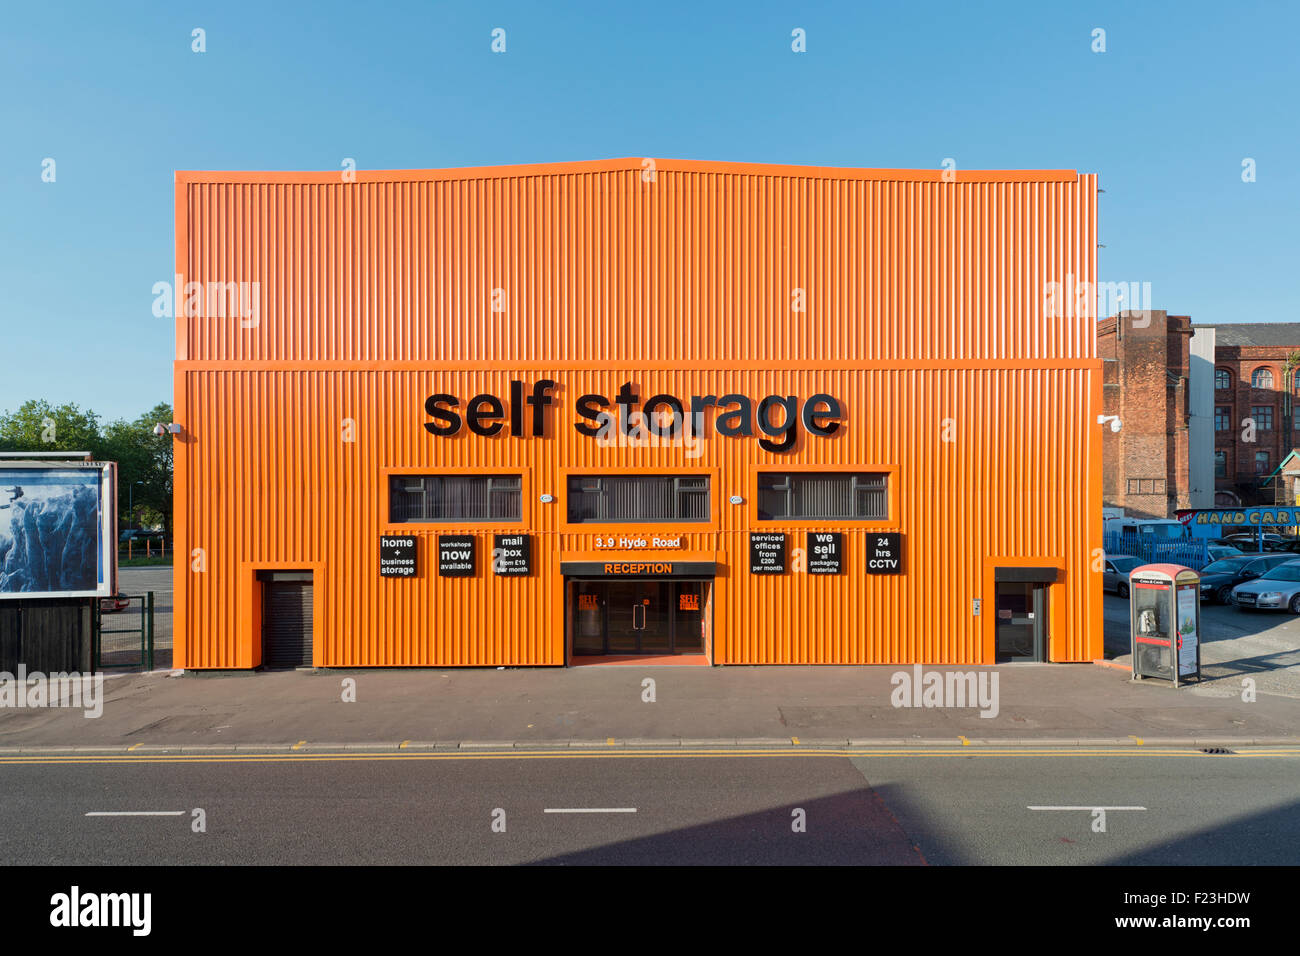 A self storage business located on the A57 Hyde Road in Ardwick